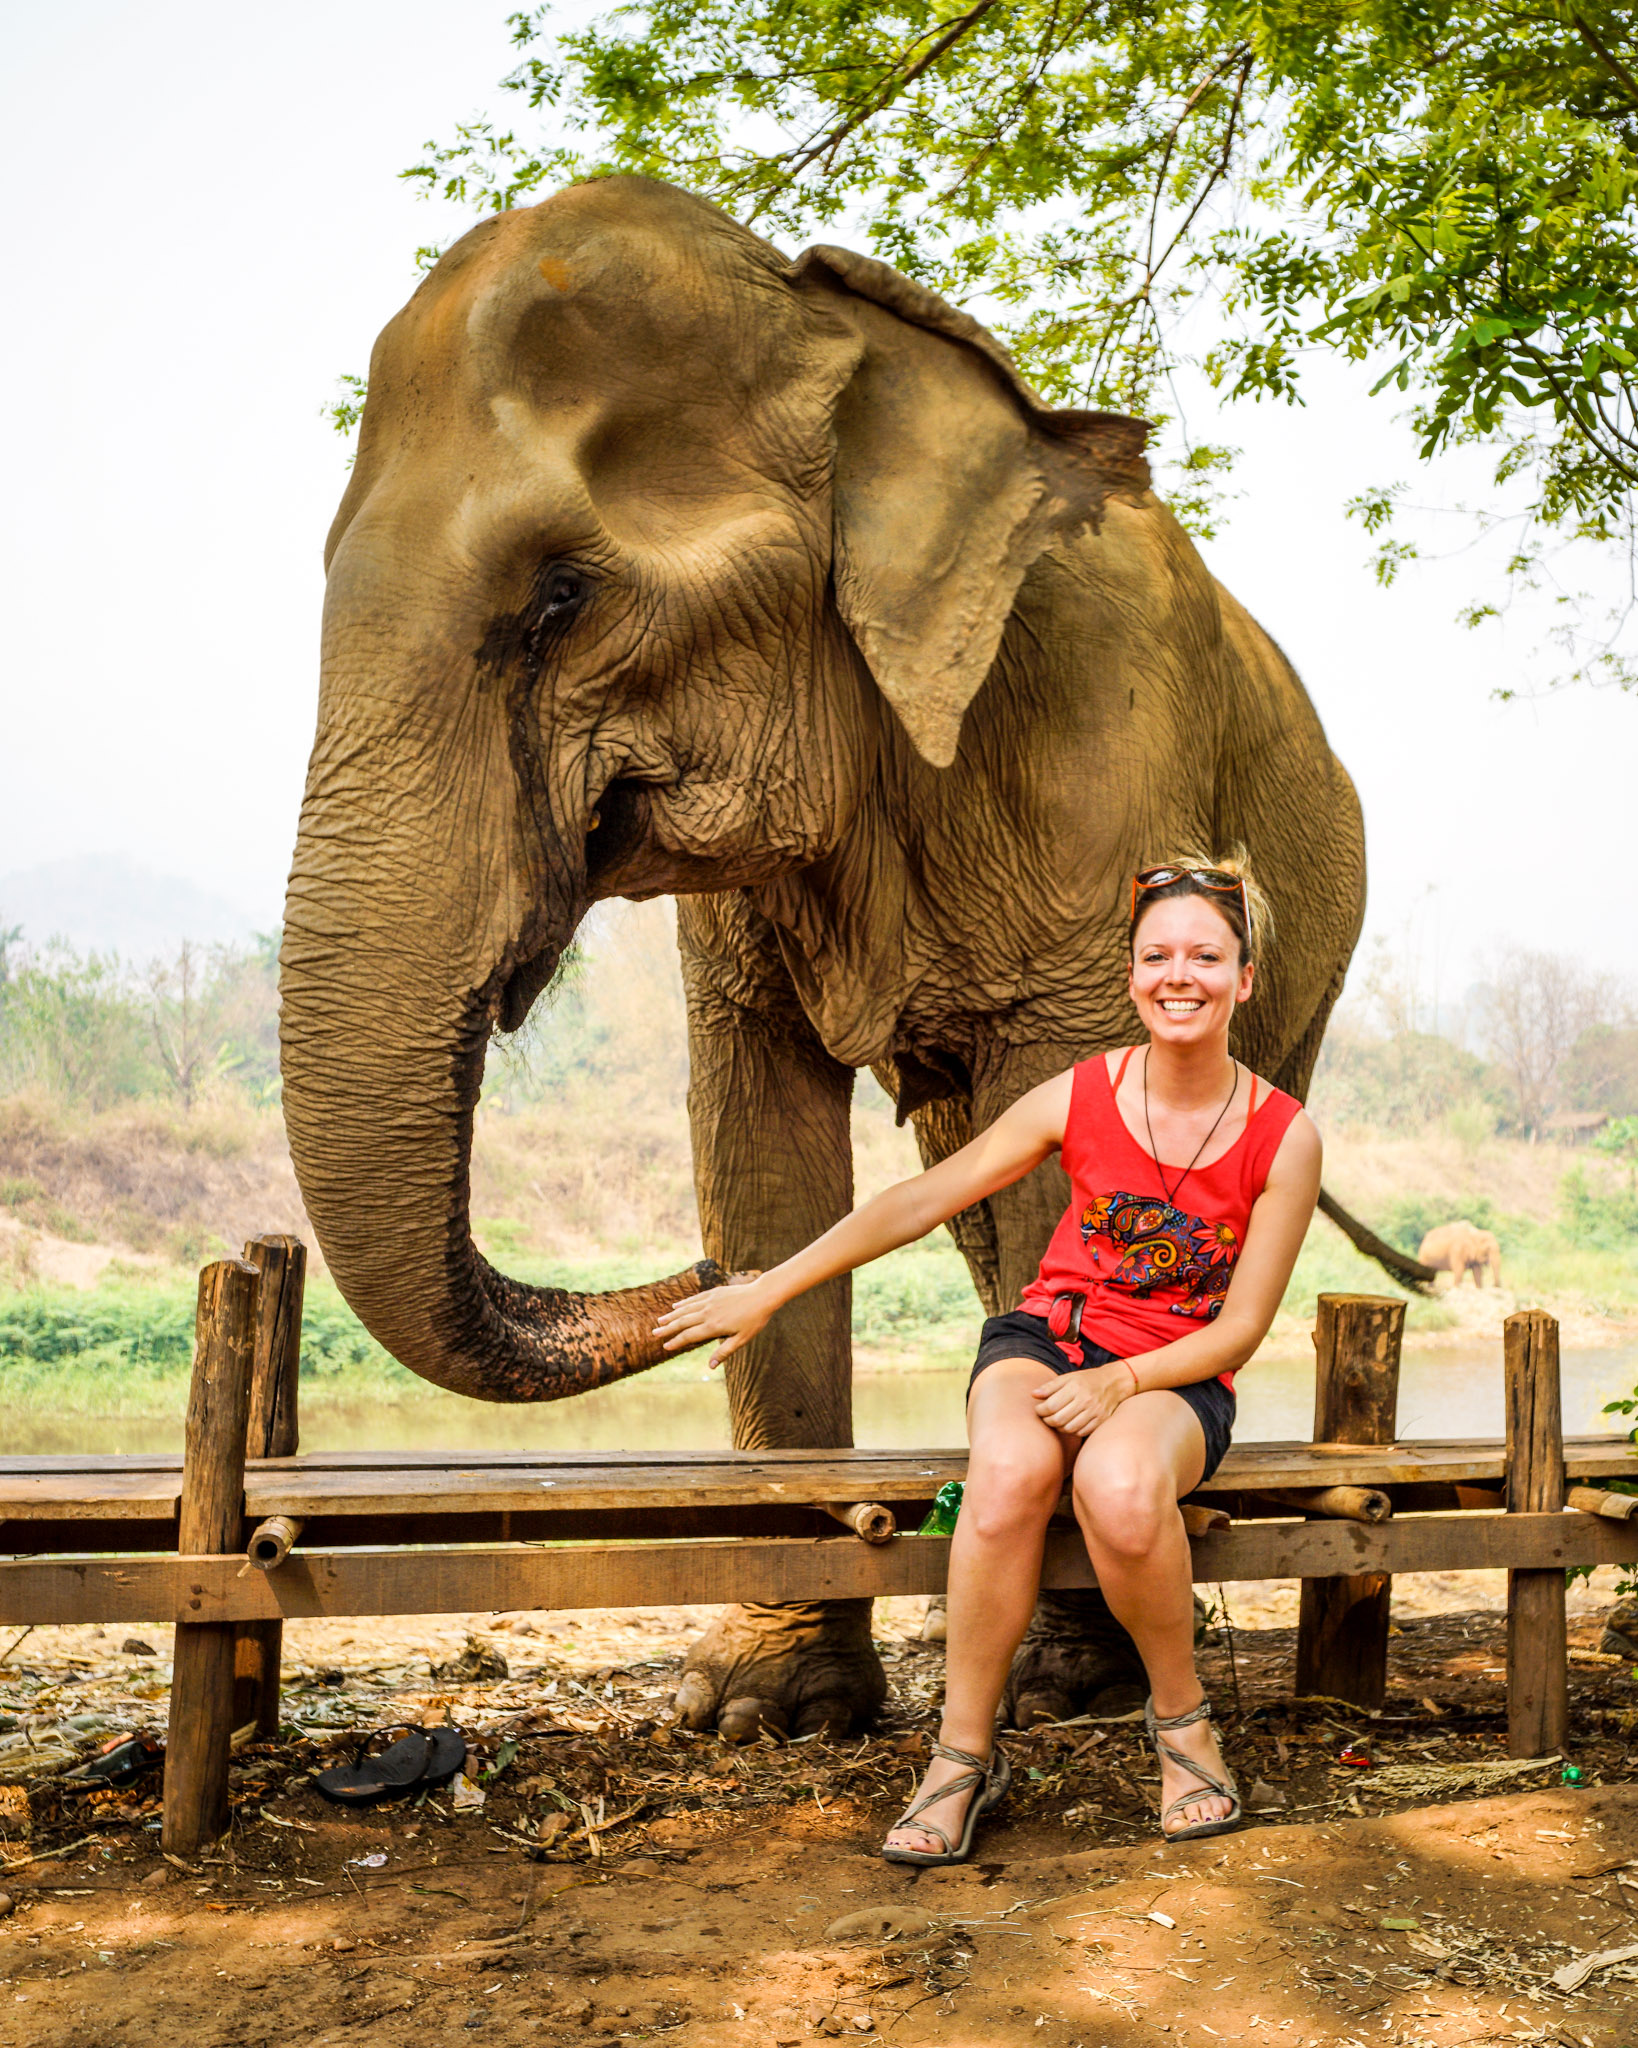 Elephant Nature Park, Thailand. How I celebrated my 30th birthday